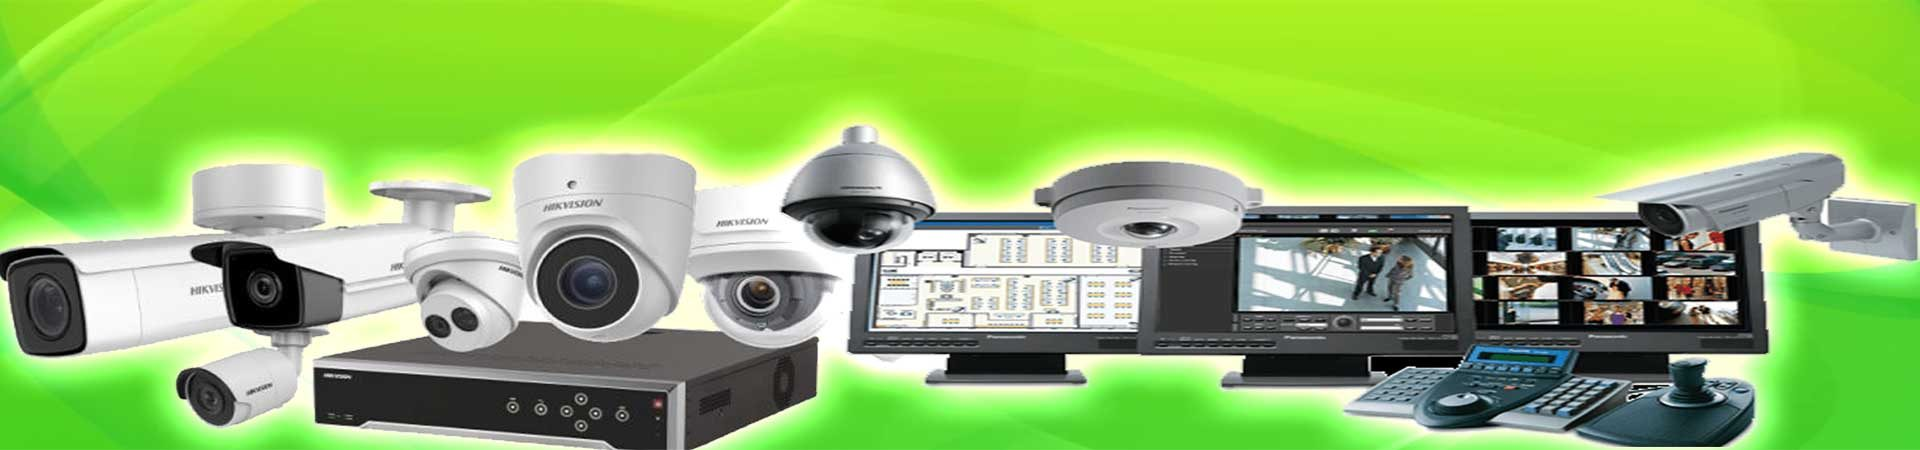 "Rated ""Best"" in Alarm Security System Management and Installation"